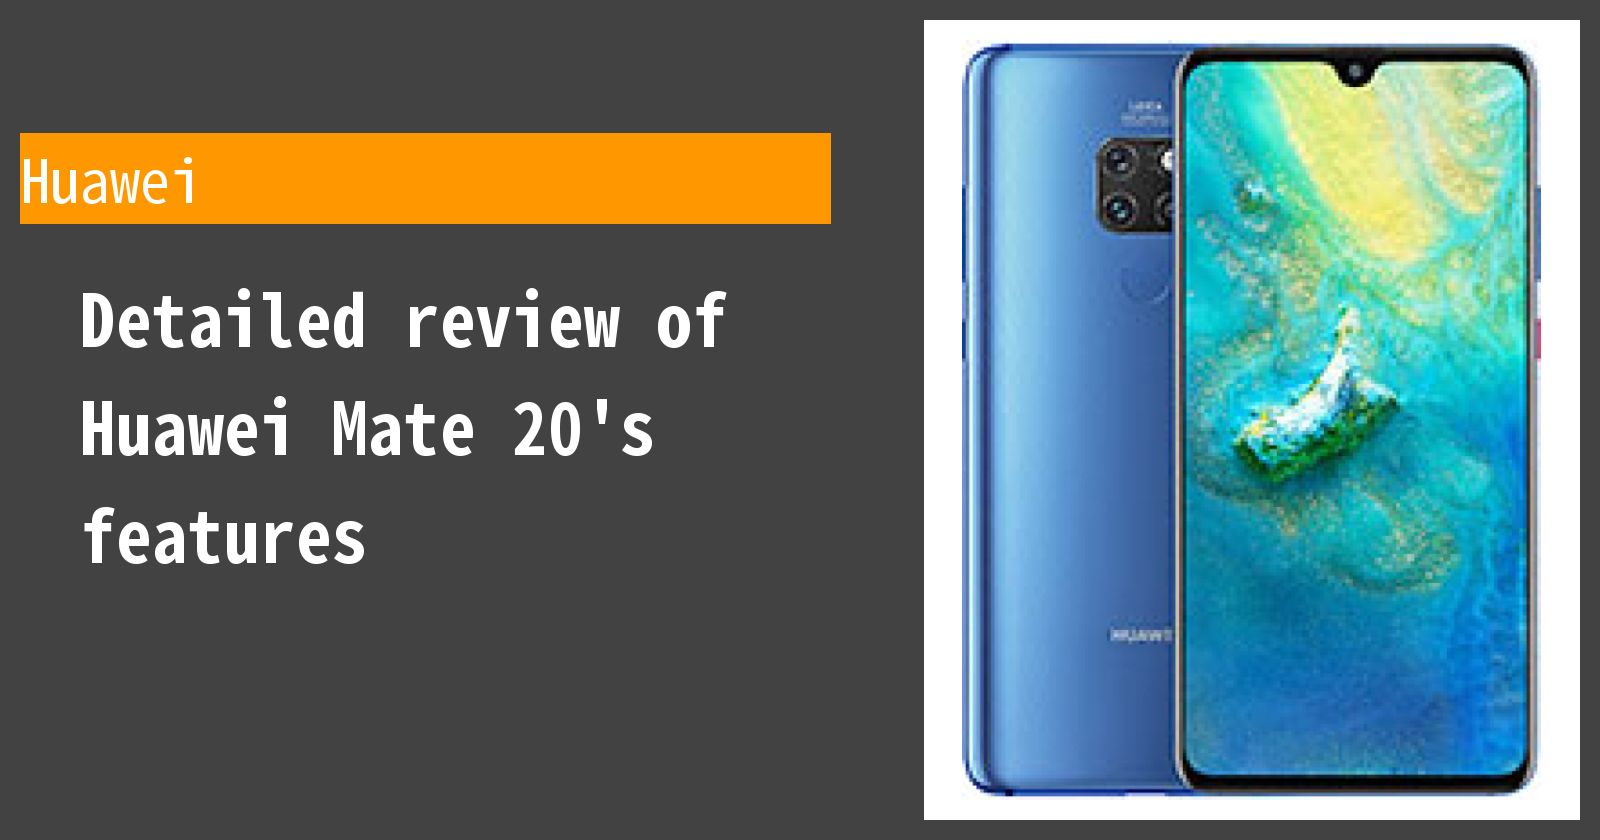 Detailed review of Huawei Mate 20's features